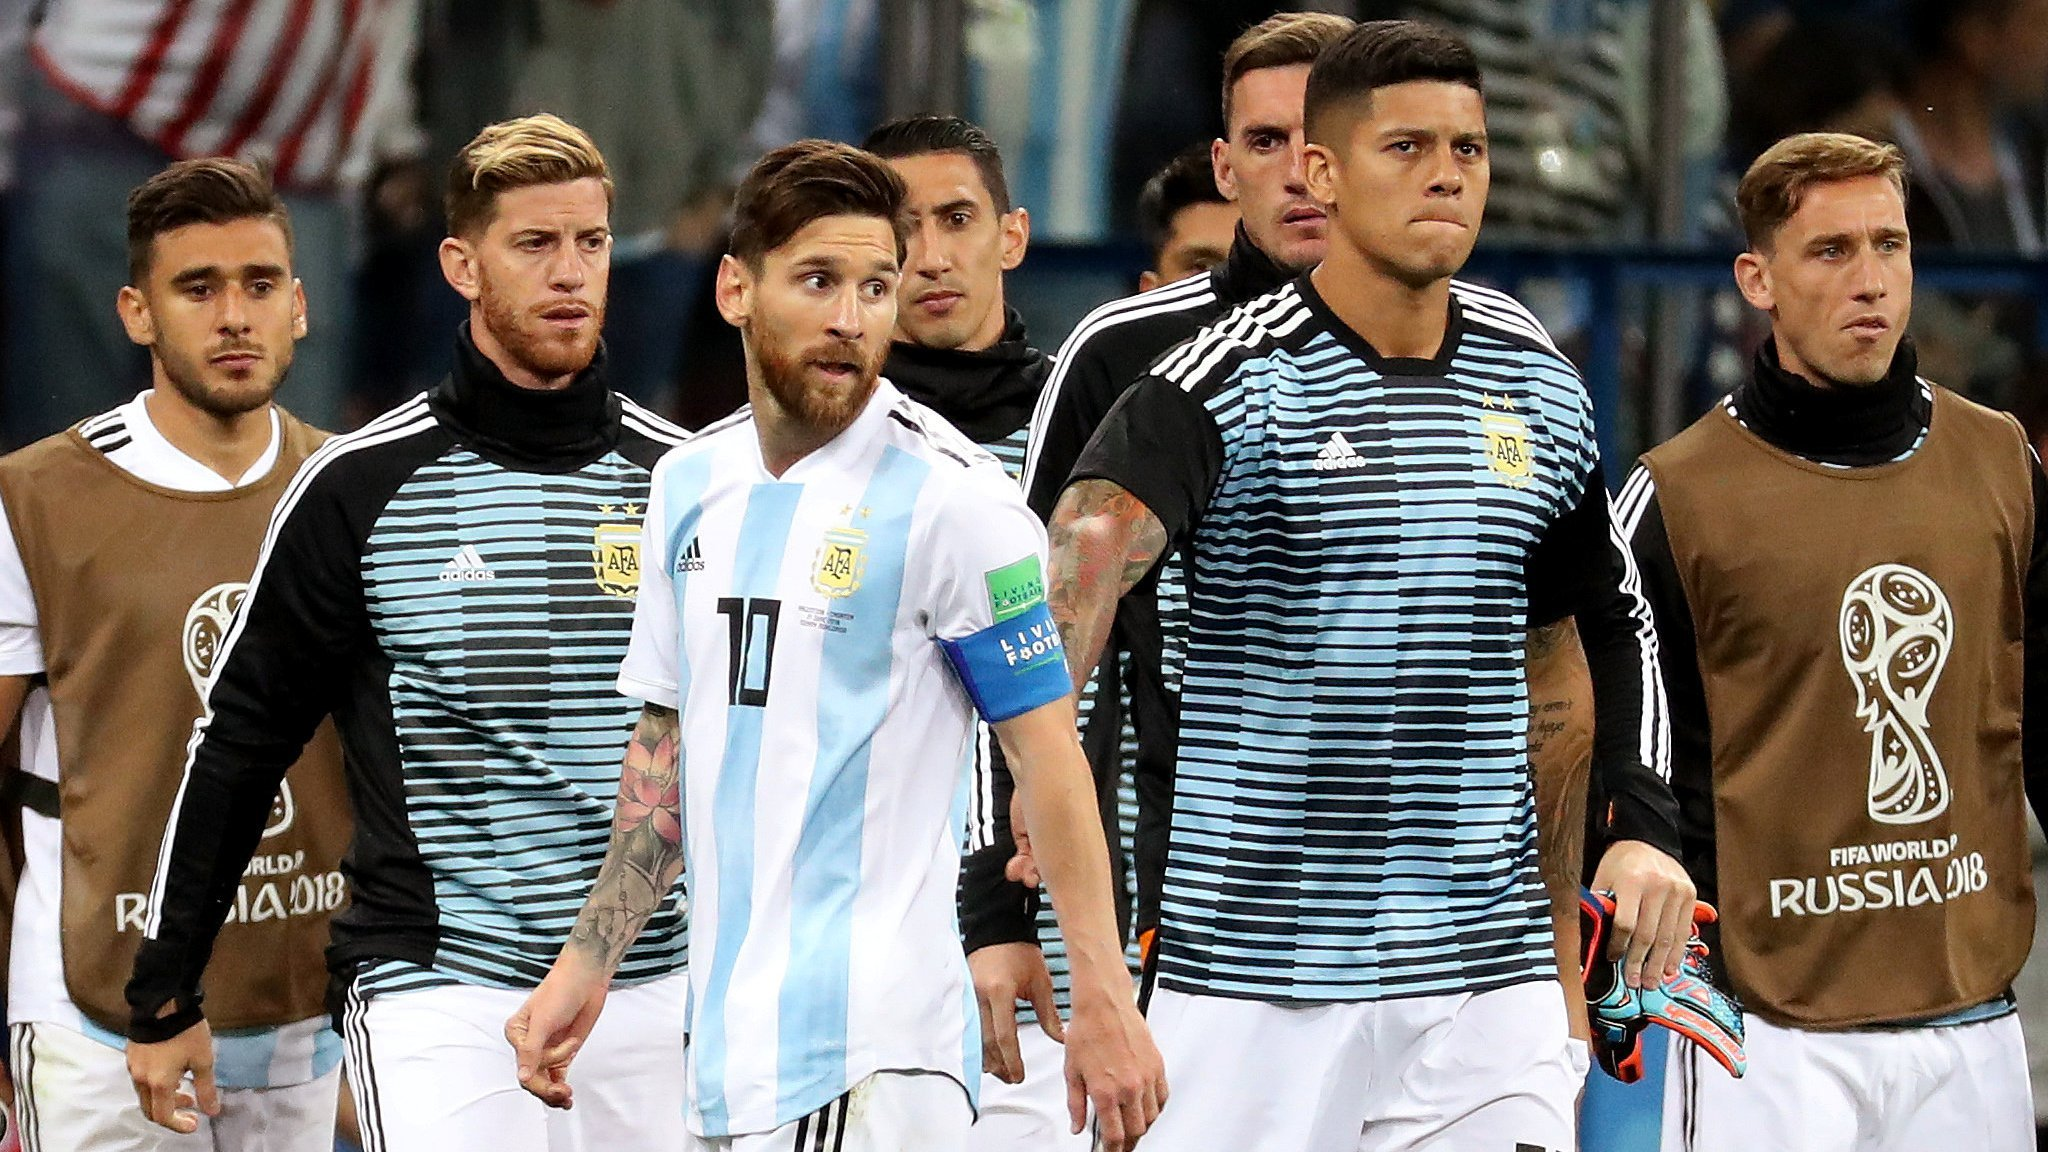 Argentina: World Cup squad is the 'worst in their history' says Ossie Ardiles